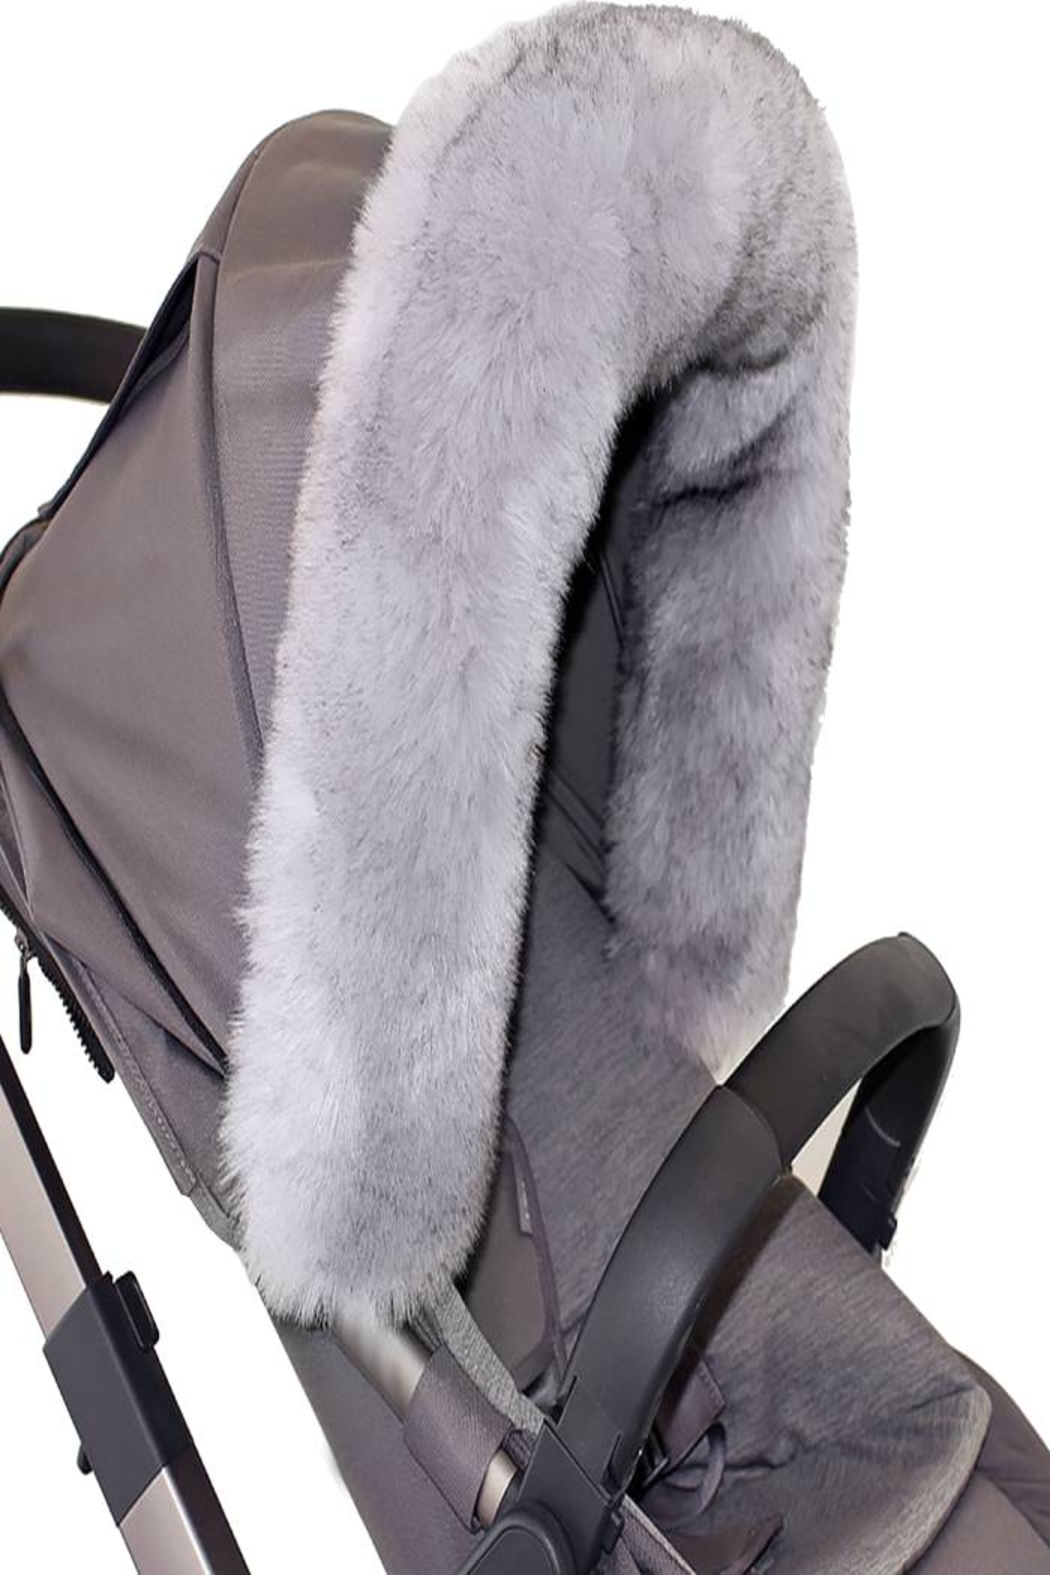 7AM Enfant 7 AM Enfant Faux Fur Marquee Tundra Canopy For Baby Carrier Or Stroller - Front Full Image